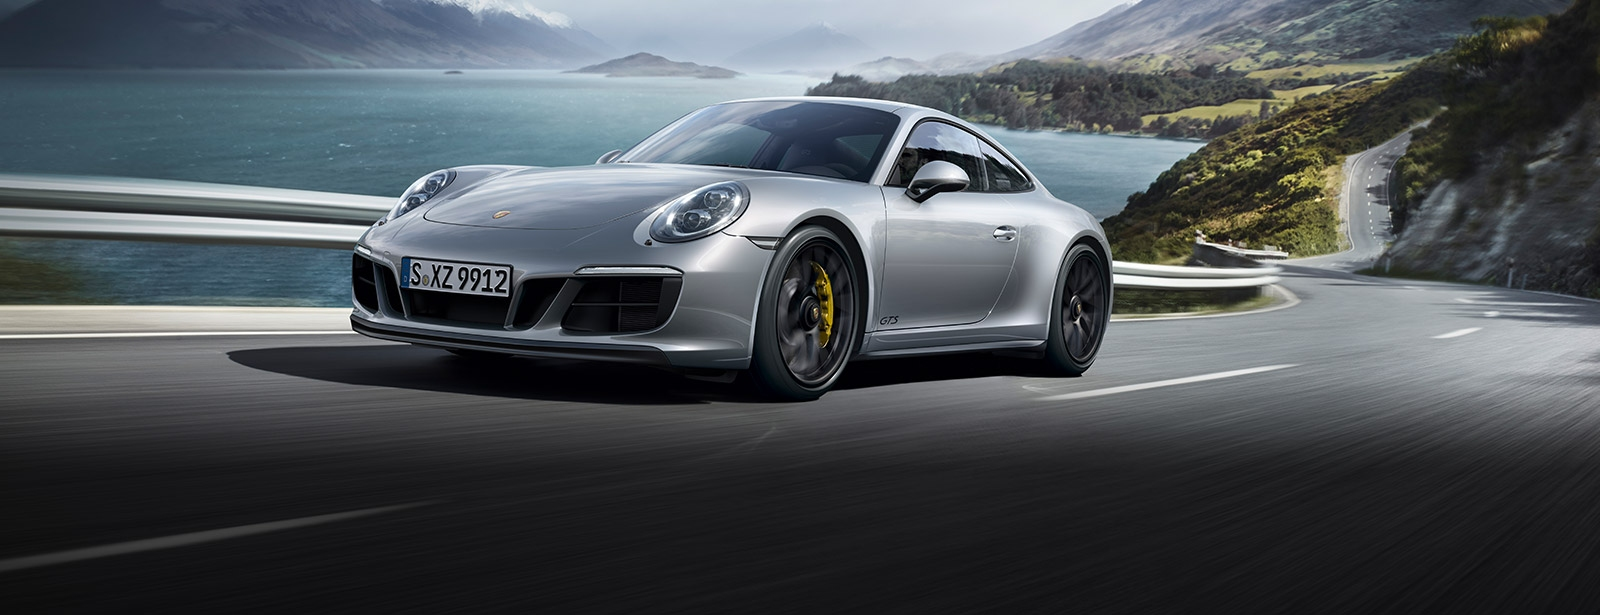 Porsche - 911 Carrera 4 GTS - Driven for more.